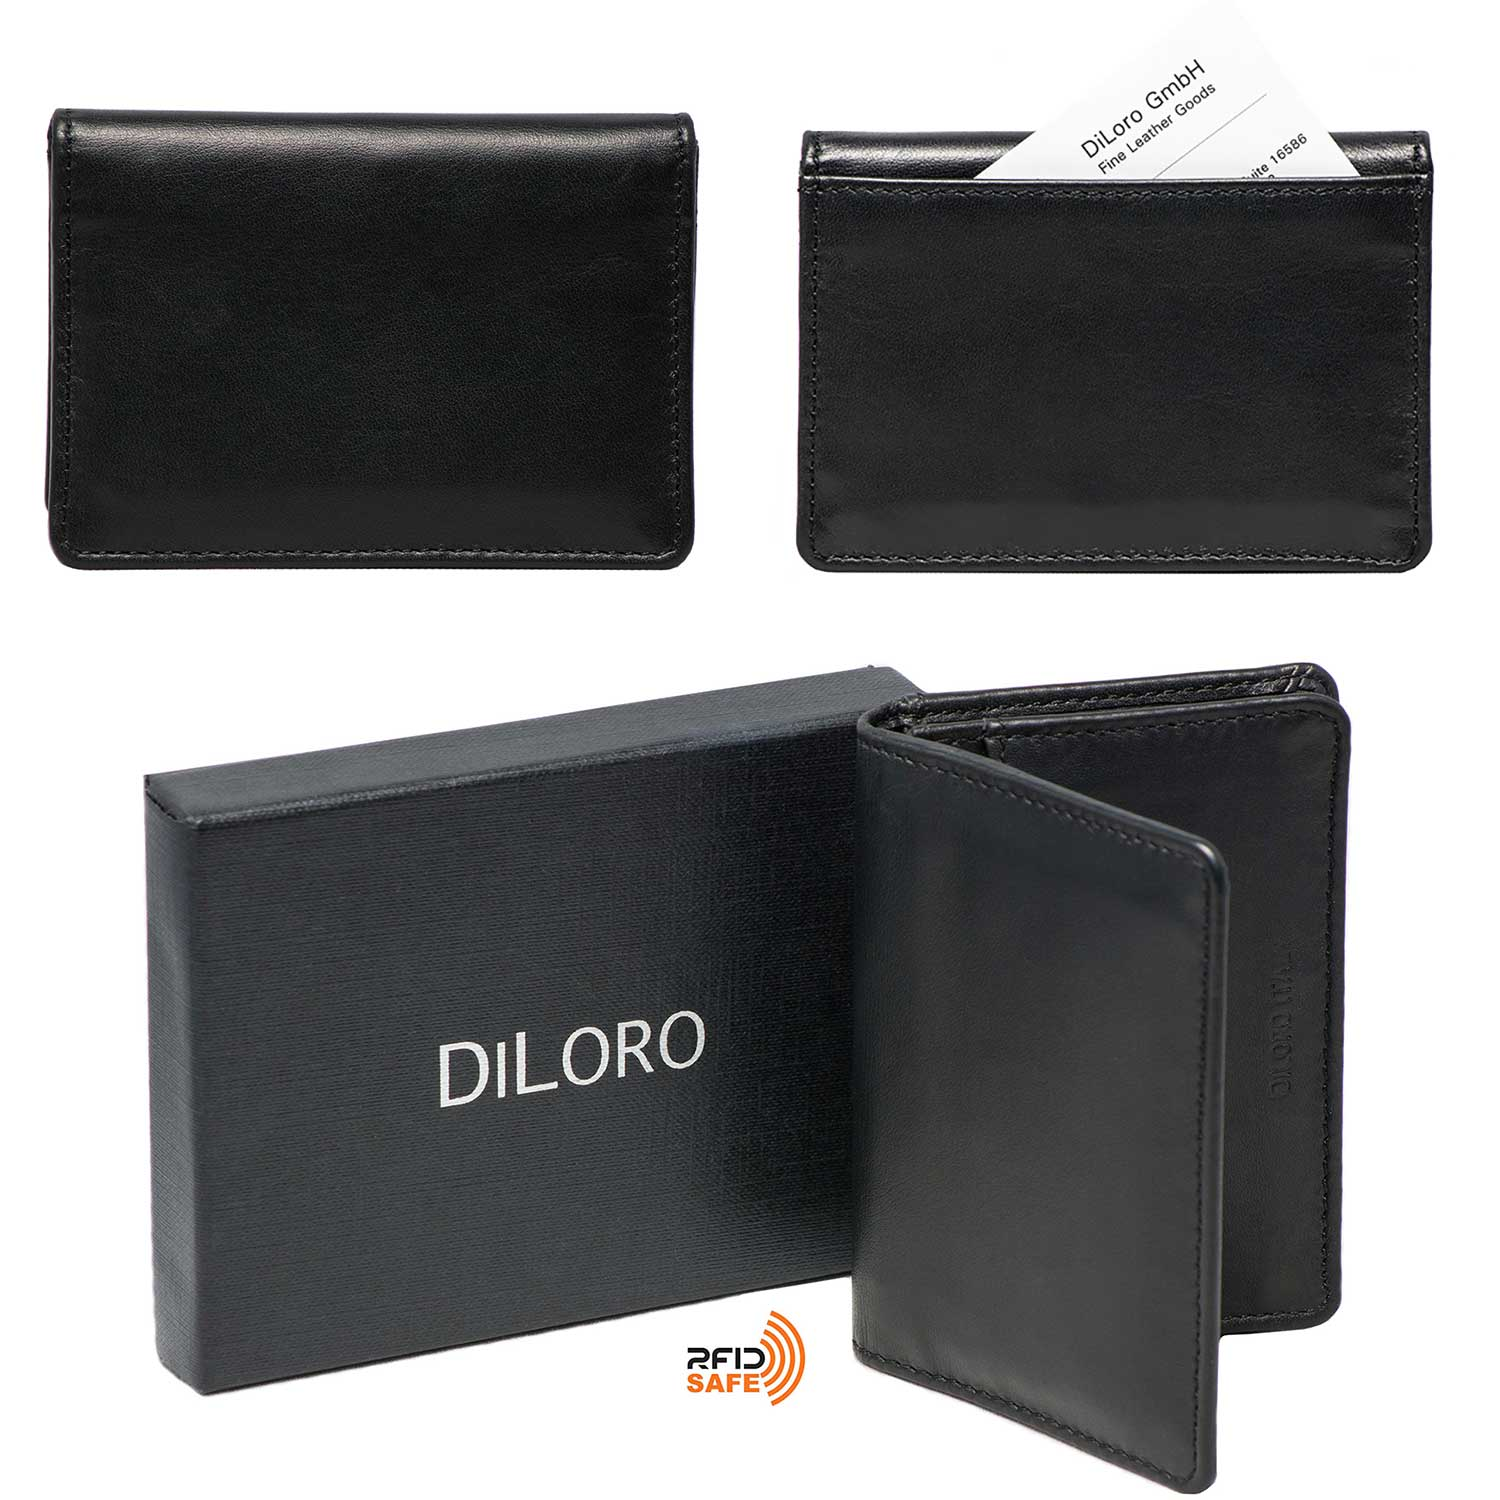 DiLoro Italy RFID Blocking Bifold Slim Genuine Leather Business Card Wallets - Front and Back View, with Gift Box